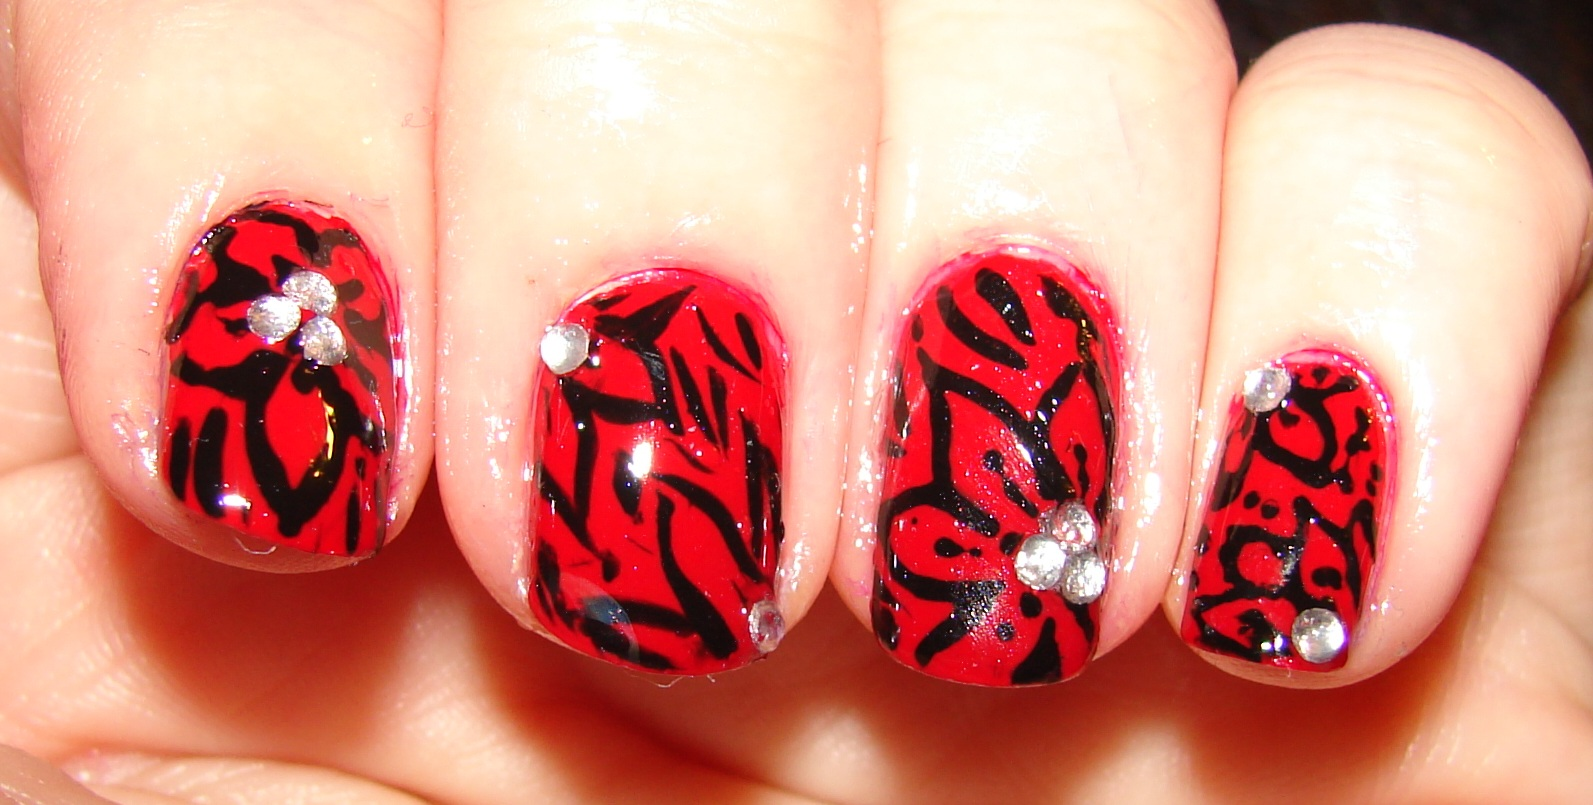 Kawaii Nail Art: Black and red flowers